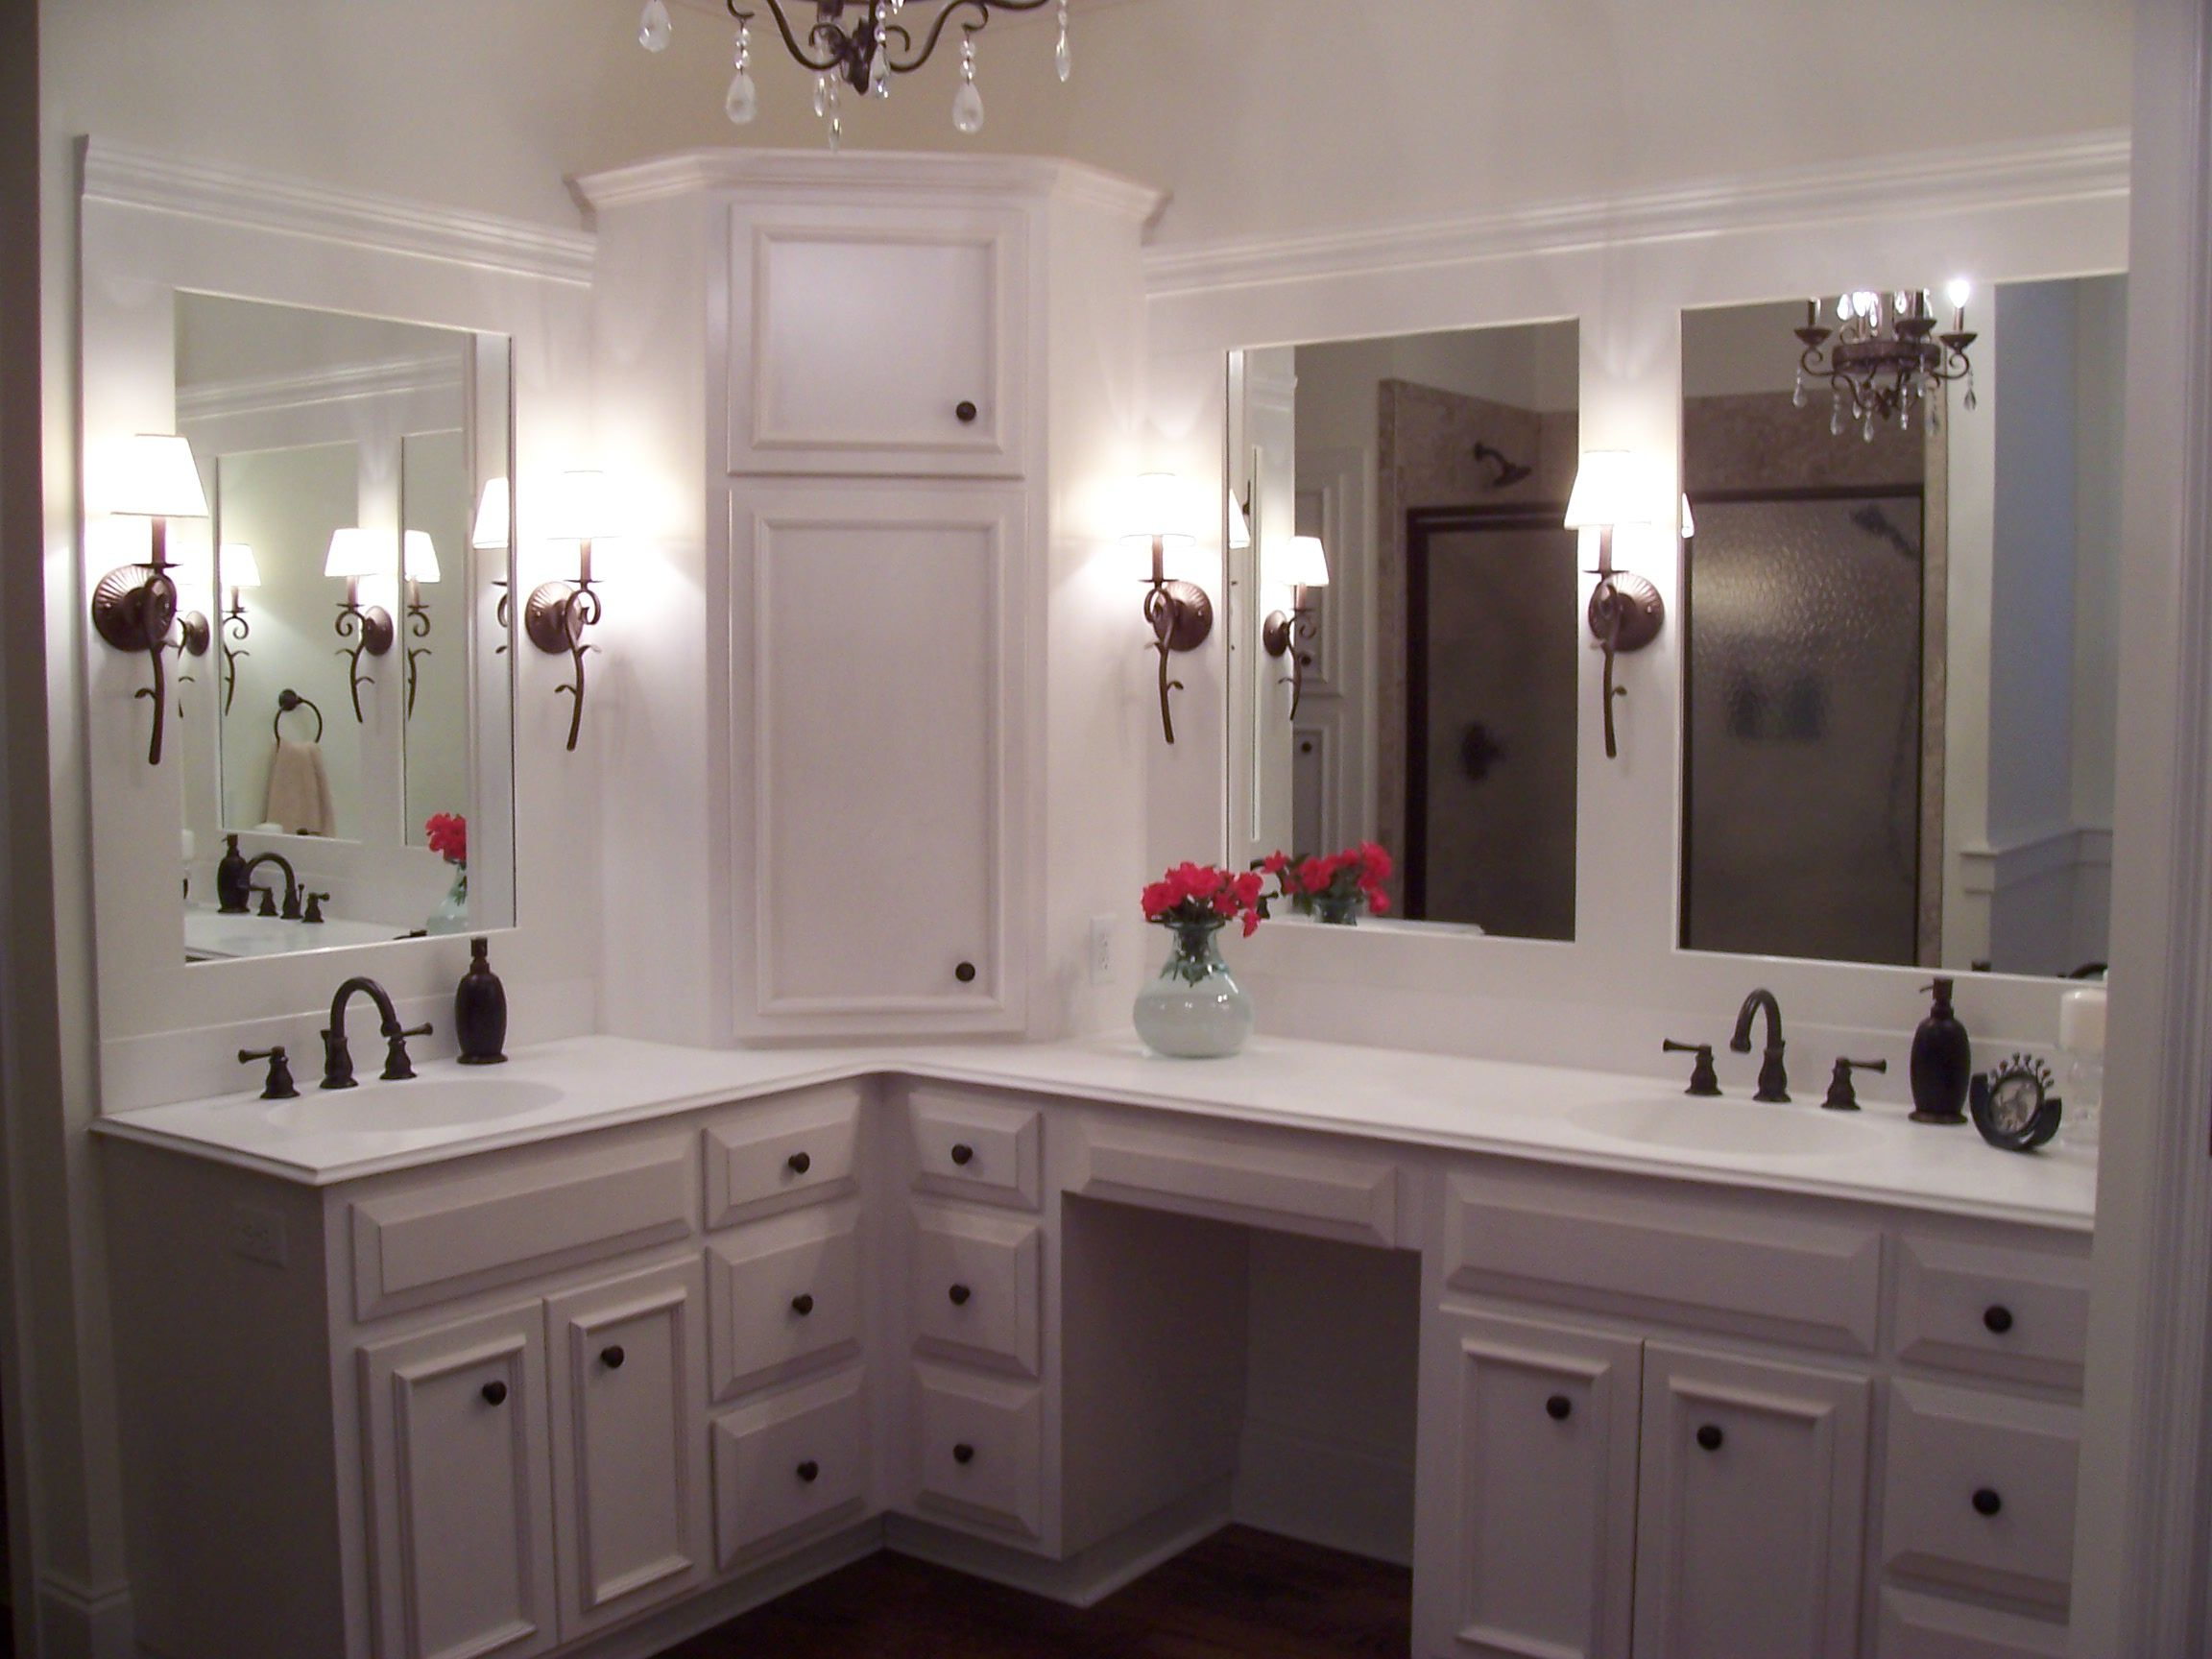 Custom built home Master Bathroom with custom white cabinets